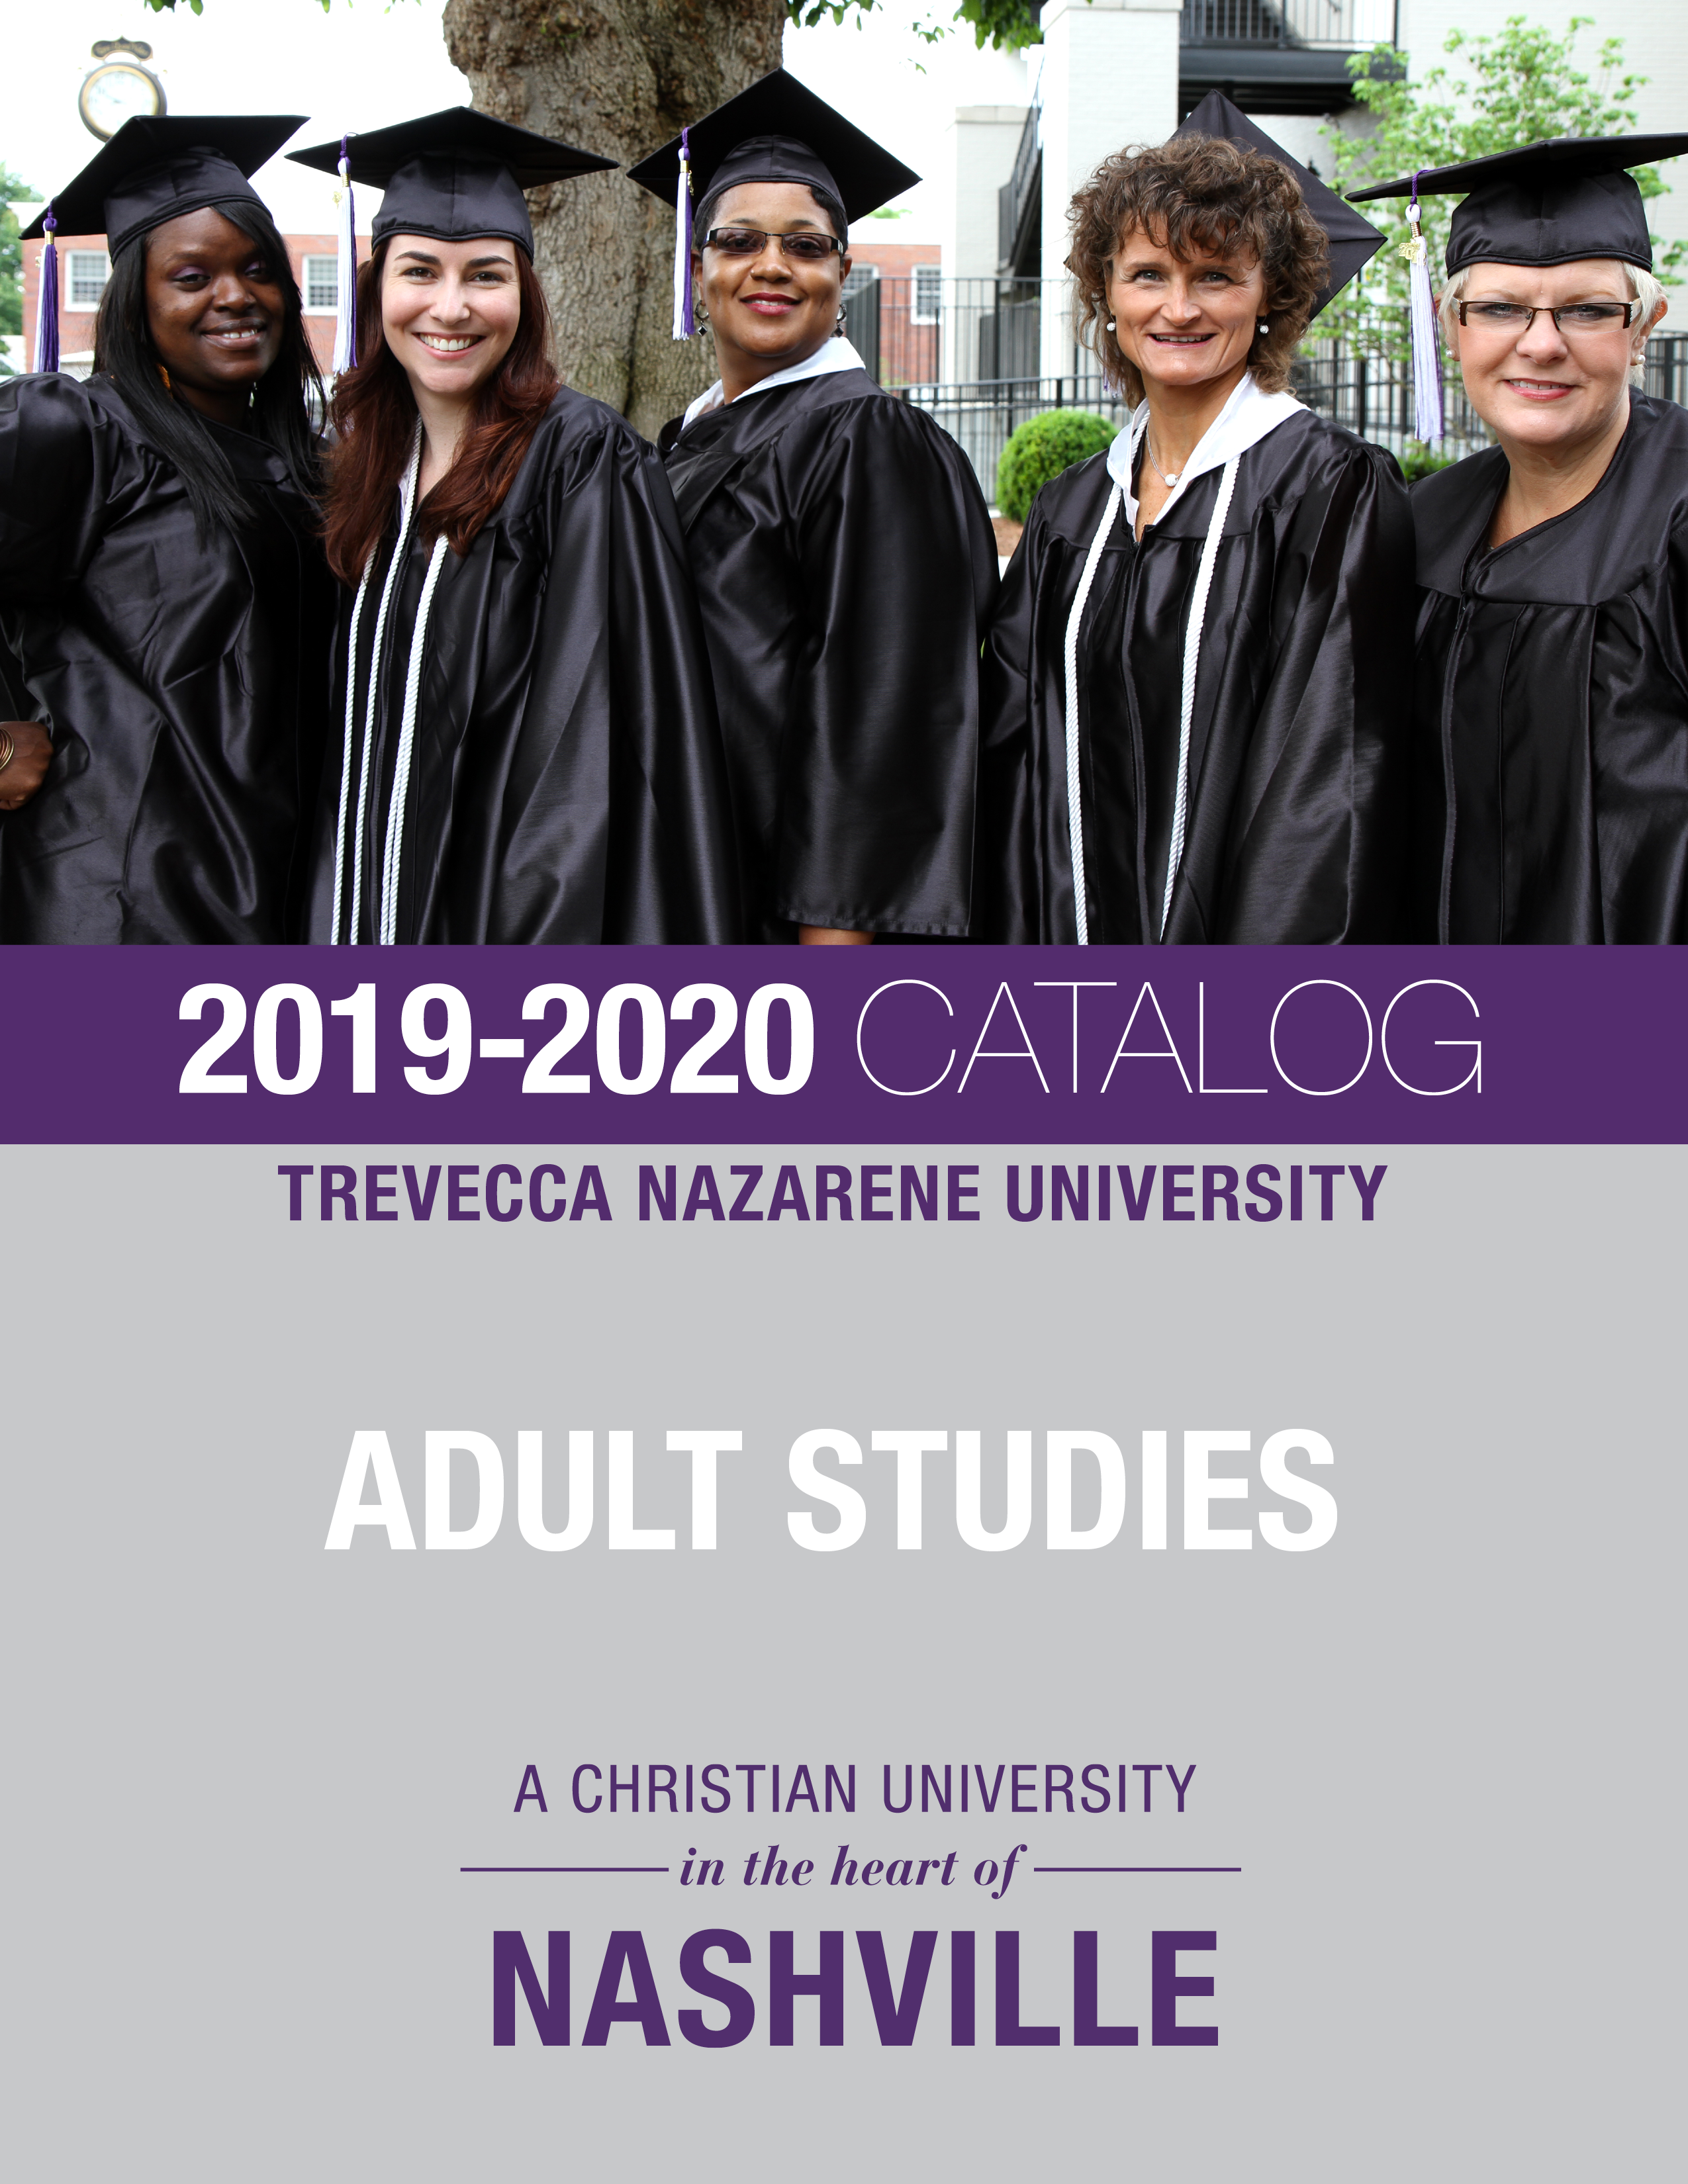 2019-2020 Adult Studies Catalog